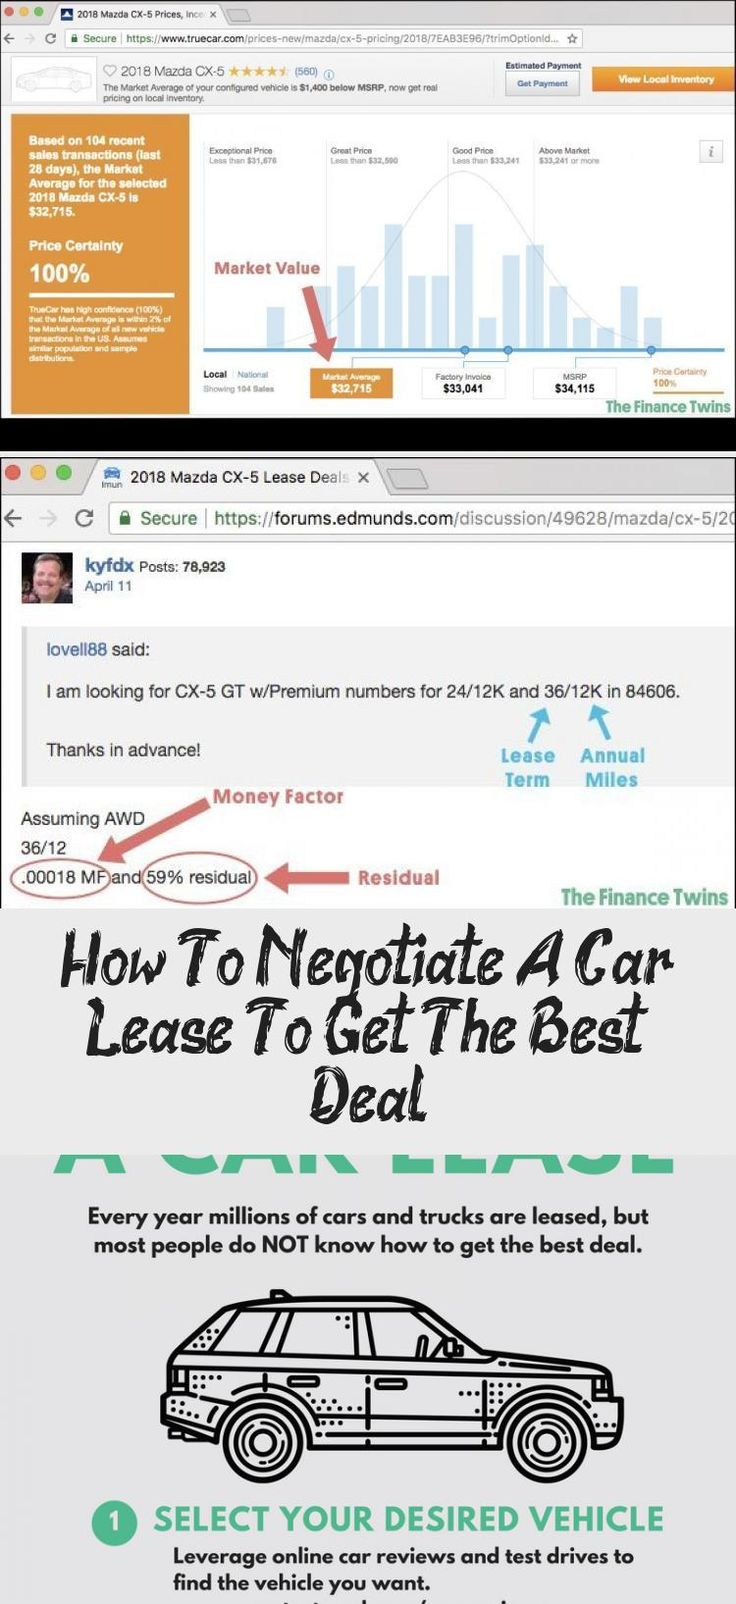 How To Negotiate A Car Lease To Get The Best Deal Cars Car Lease Lease Negotiation